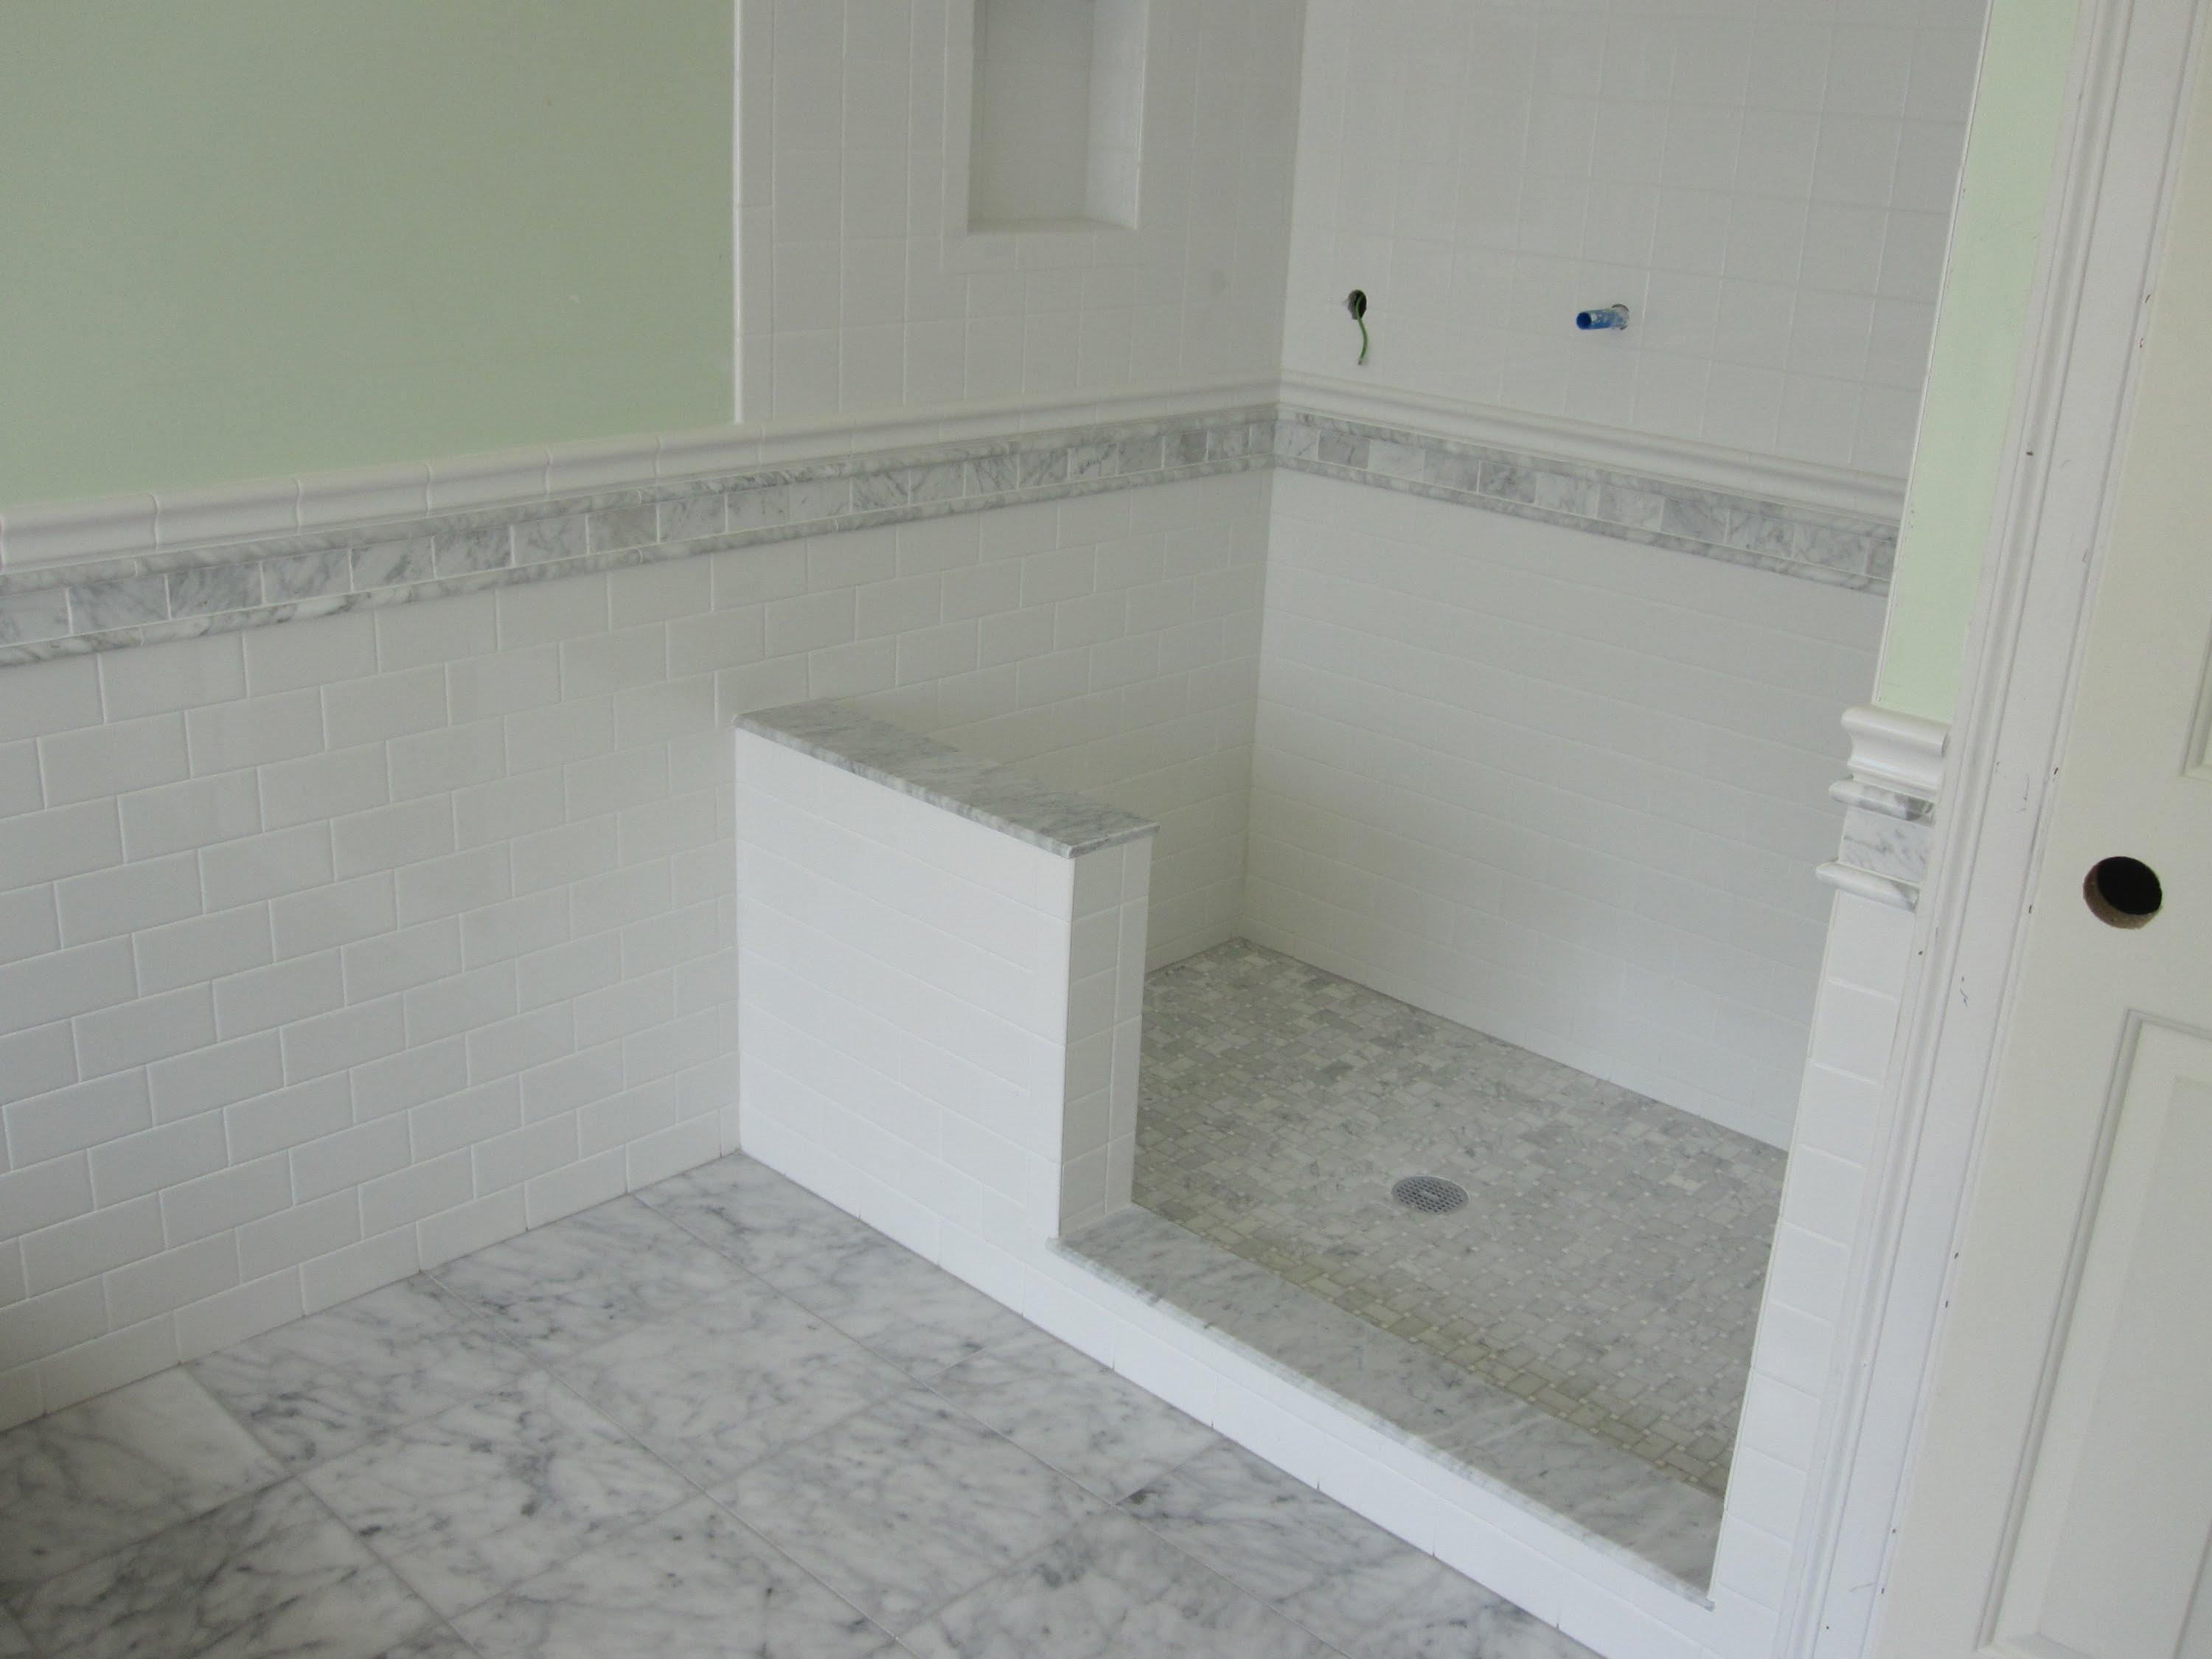 Fabulous Marble And Subway Tile Master Bathroom Youtube Inside Set Bathroom Chair Rail Ideas House Generation